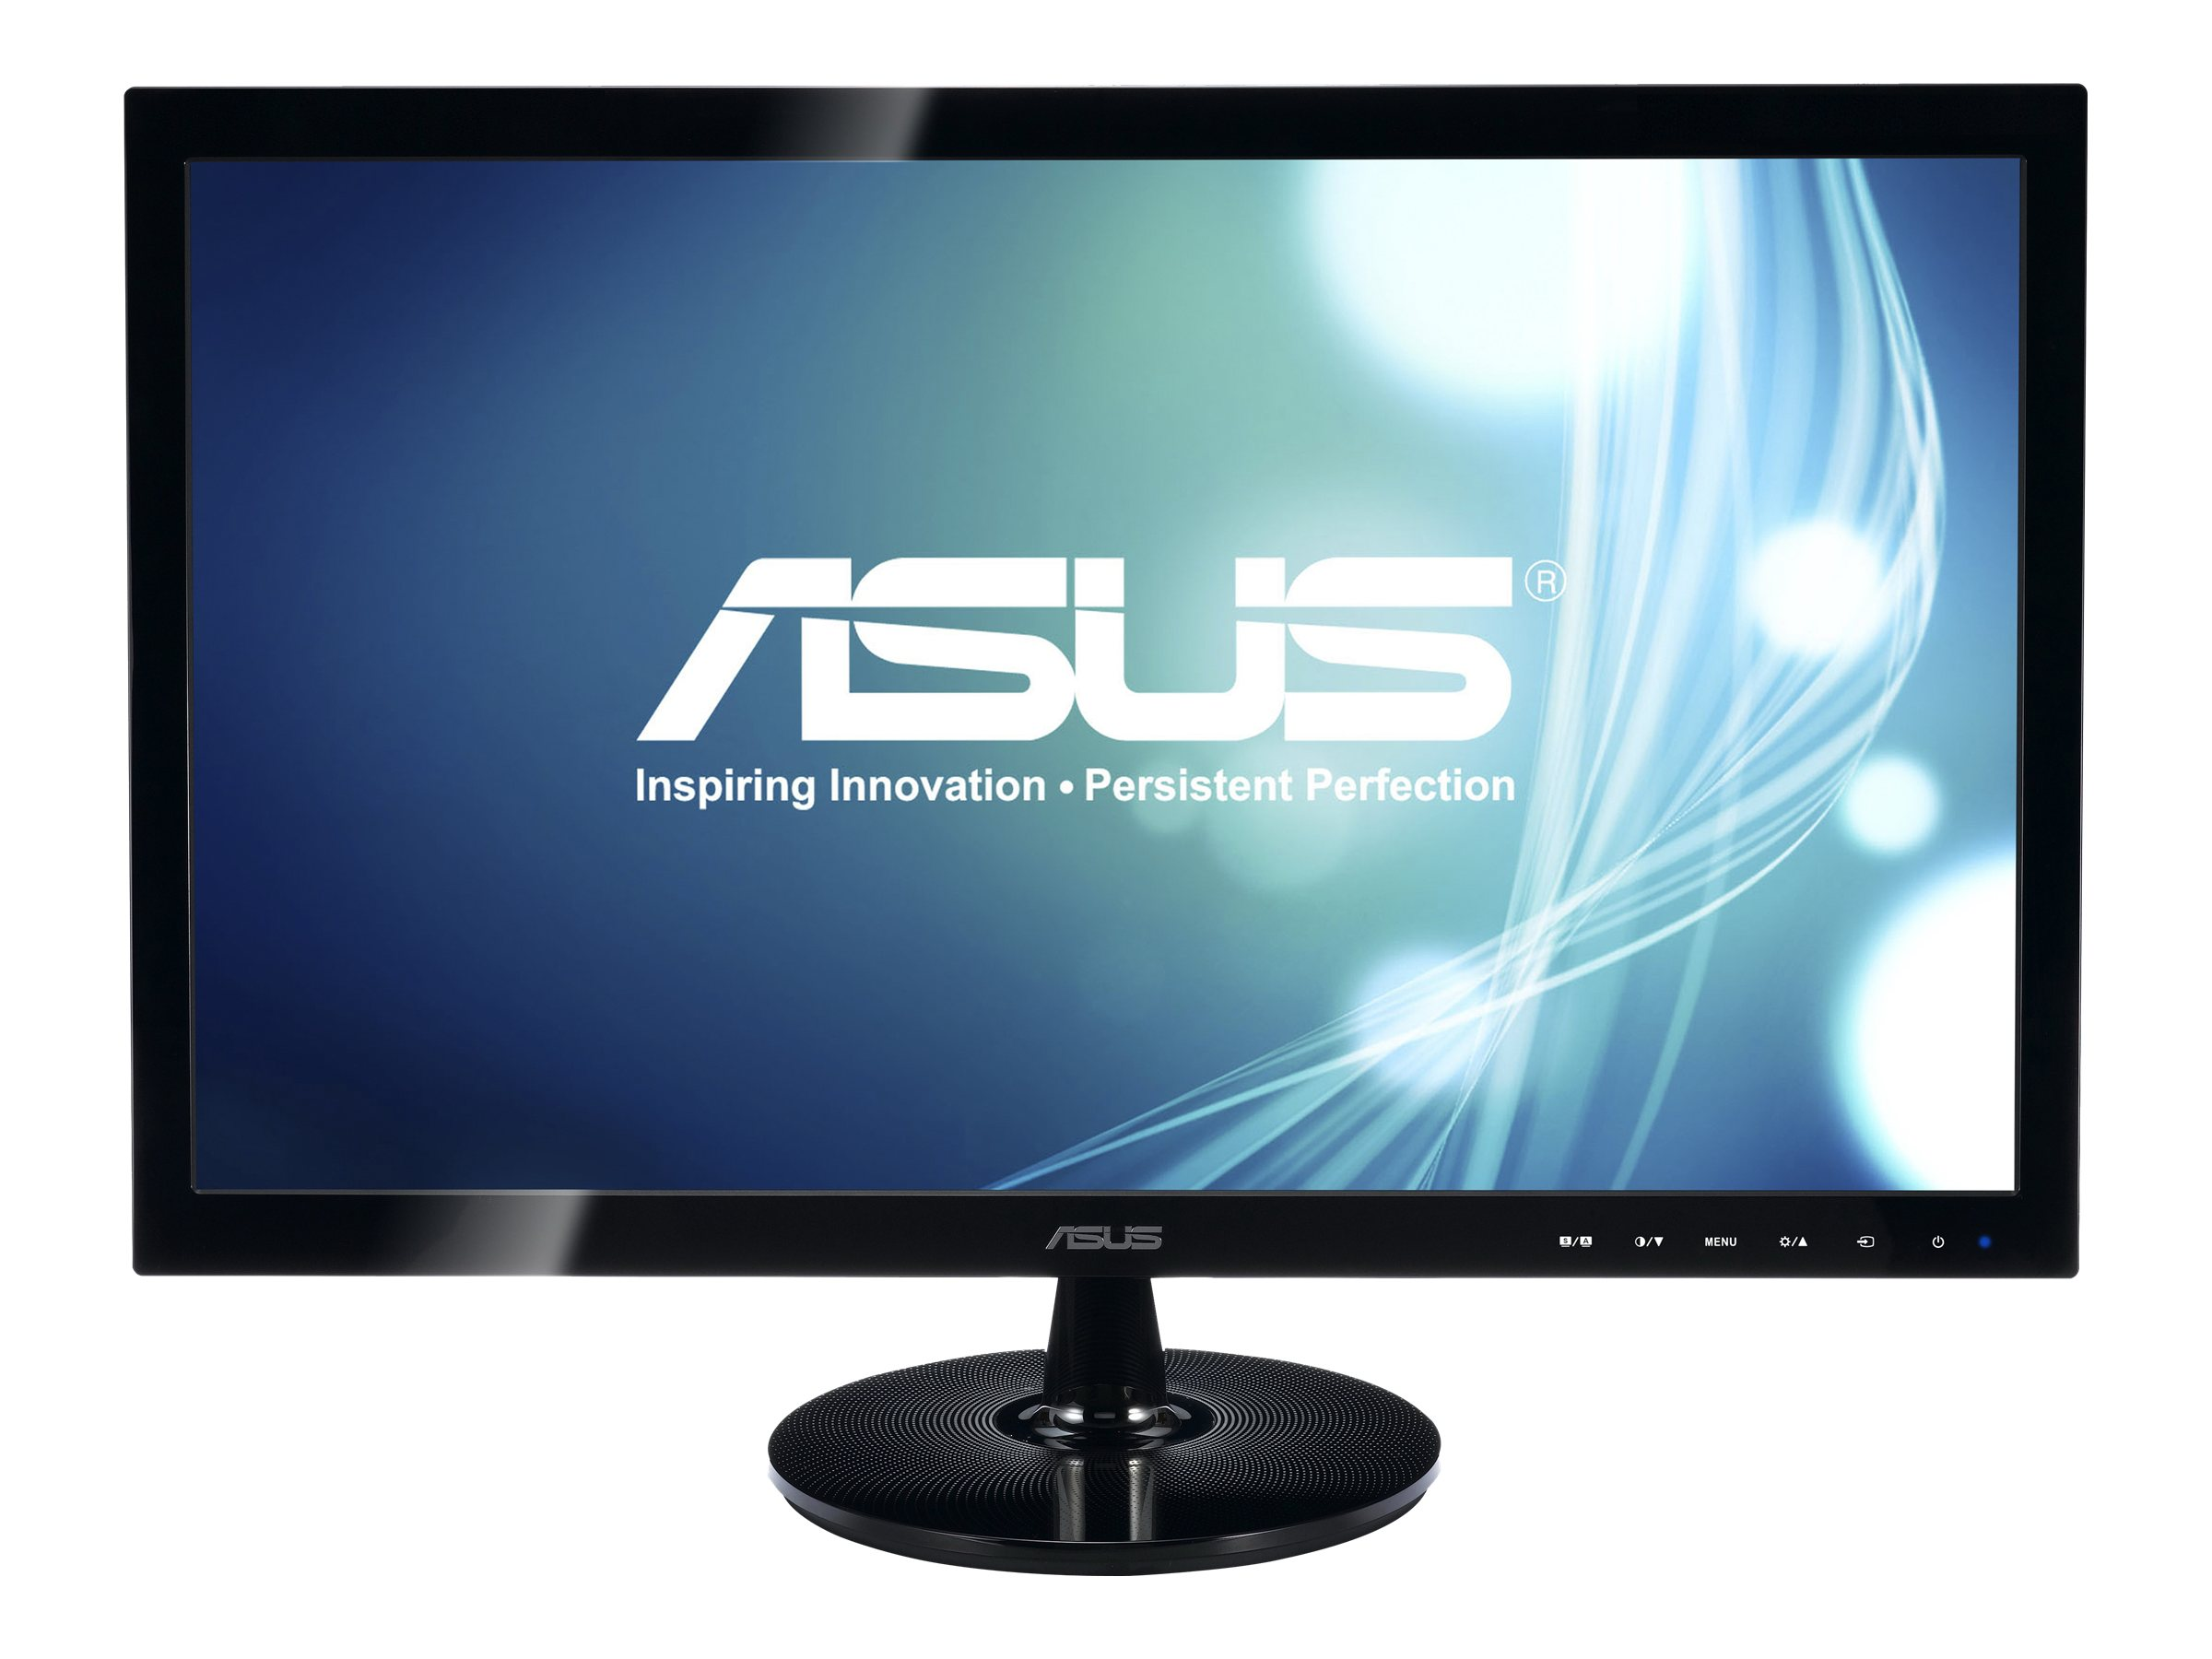 Asus 20 VS207D-P LED-LCD Monitor, Black, VS207D-P, 15309115, Monitors - LED-LCD